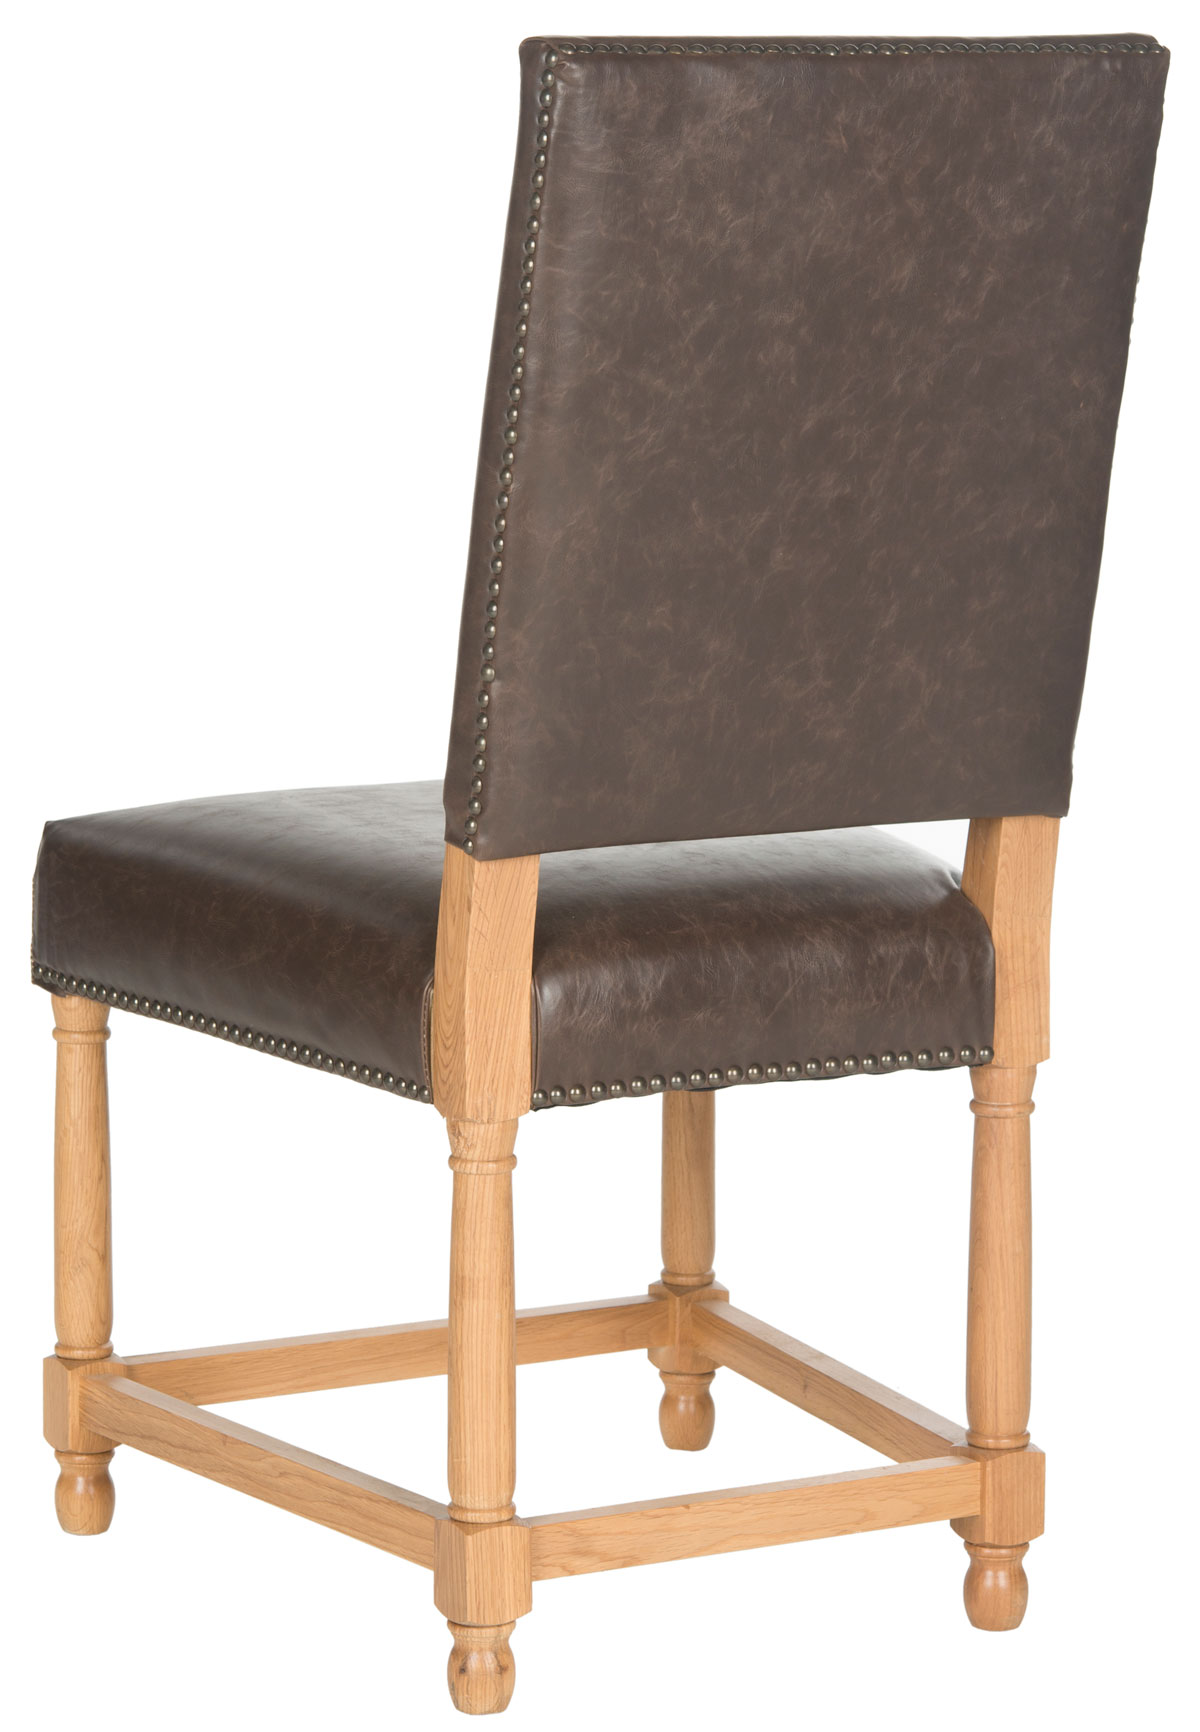 safavieh dining chairs contemporary lounge chair mcr4557b set2 furniture by